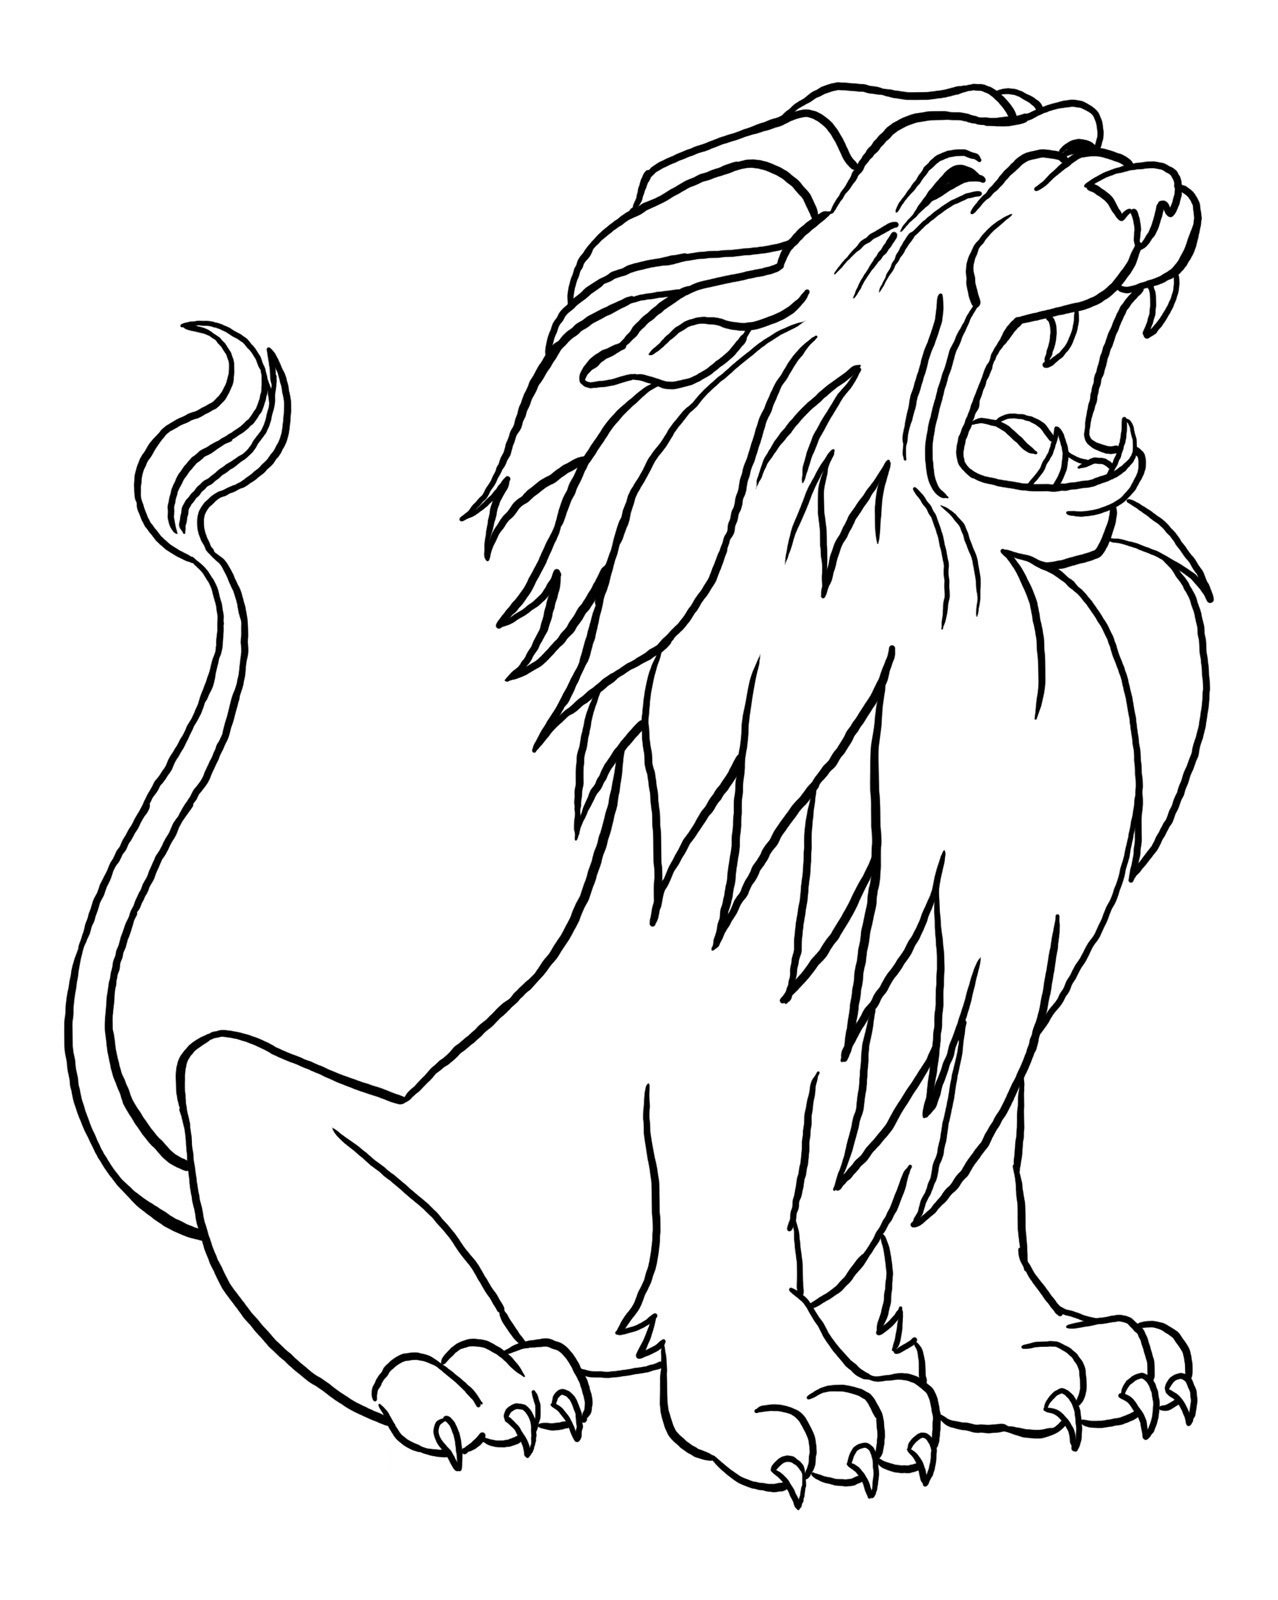 lion coloring pages kids - Coloring Pages Kids Printable